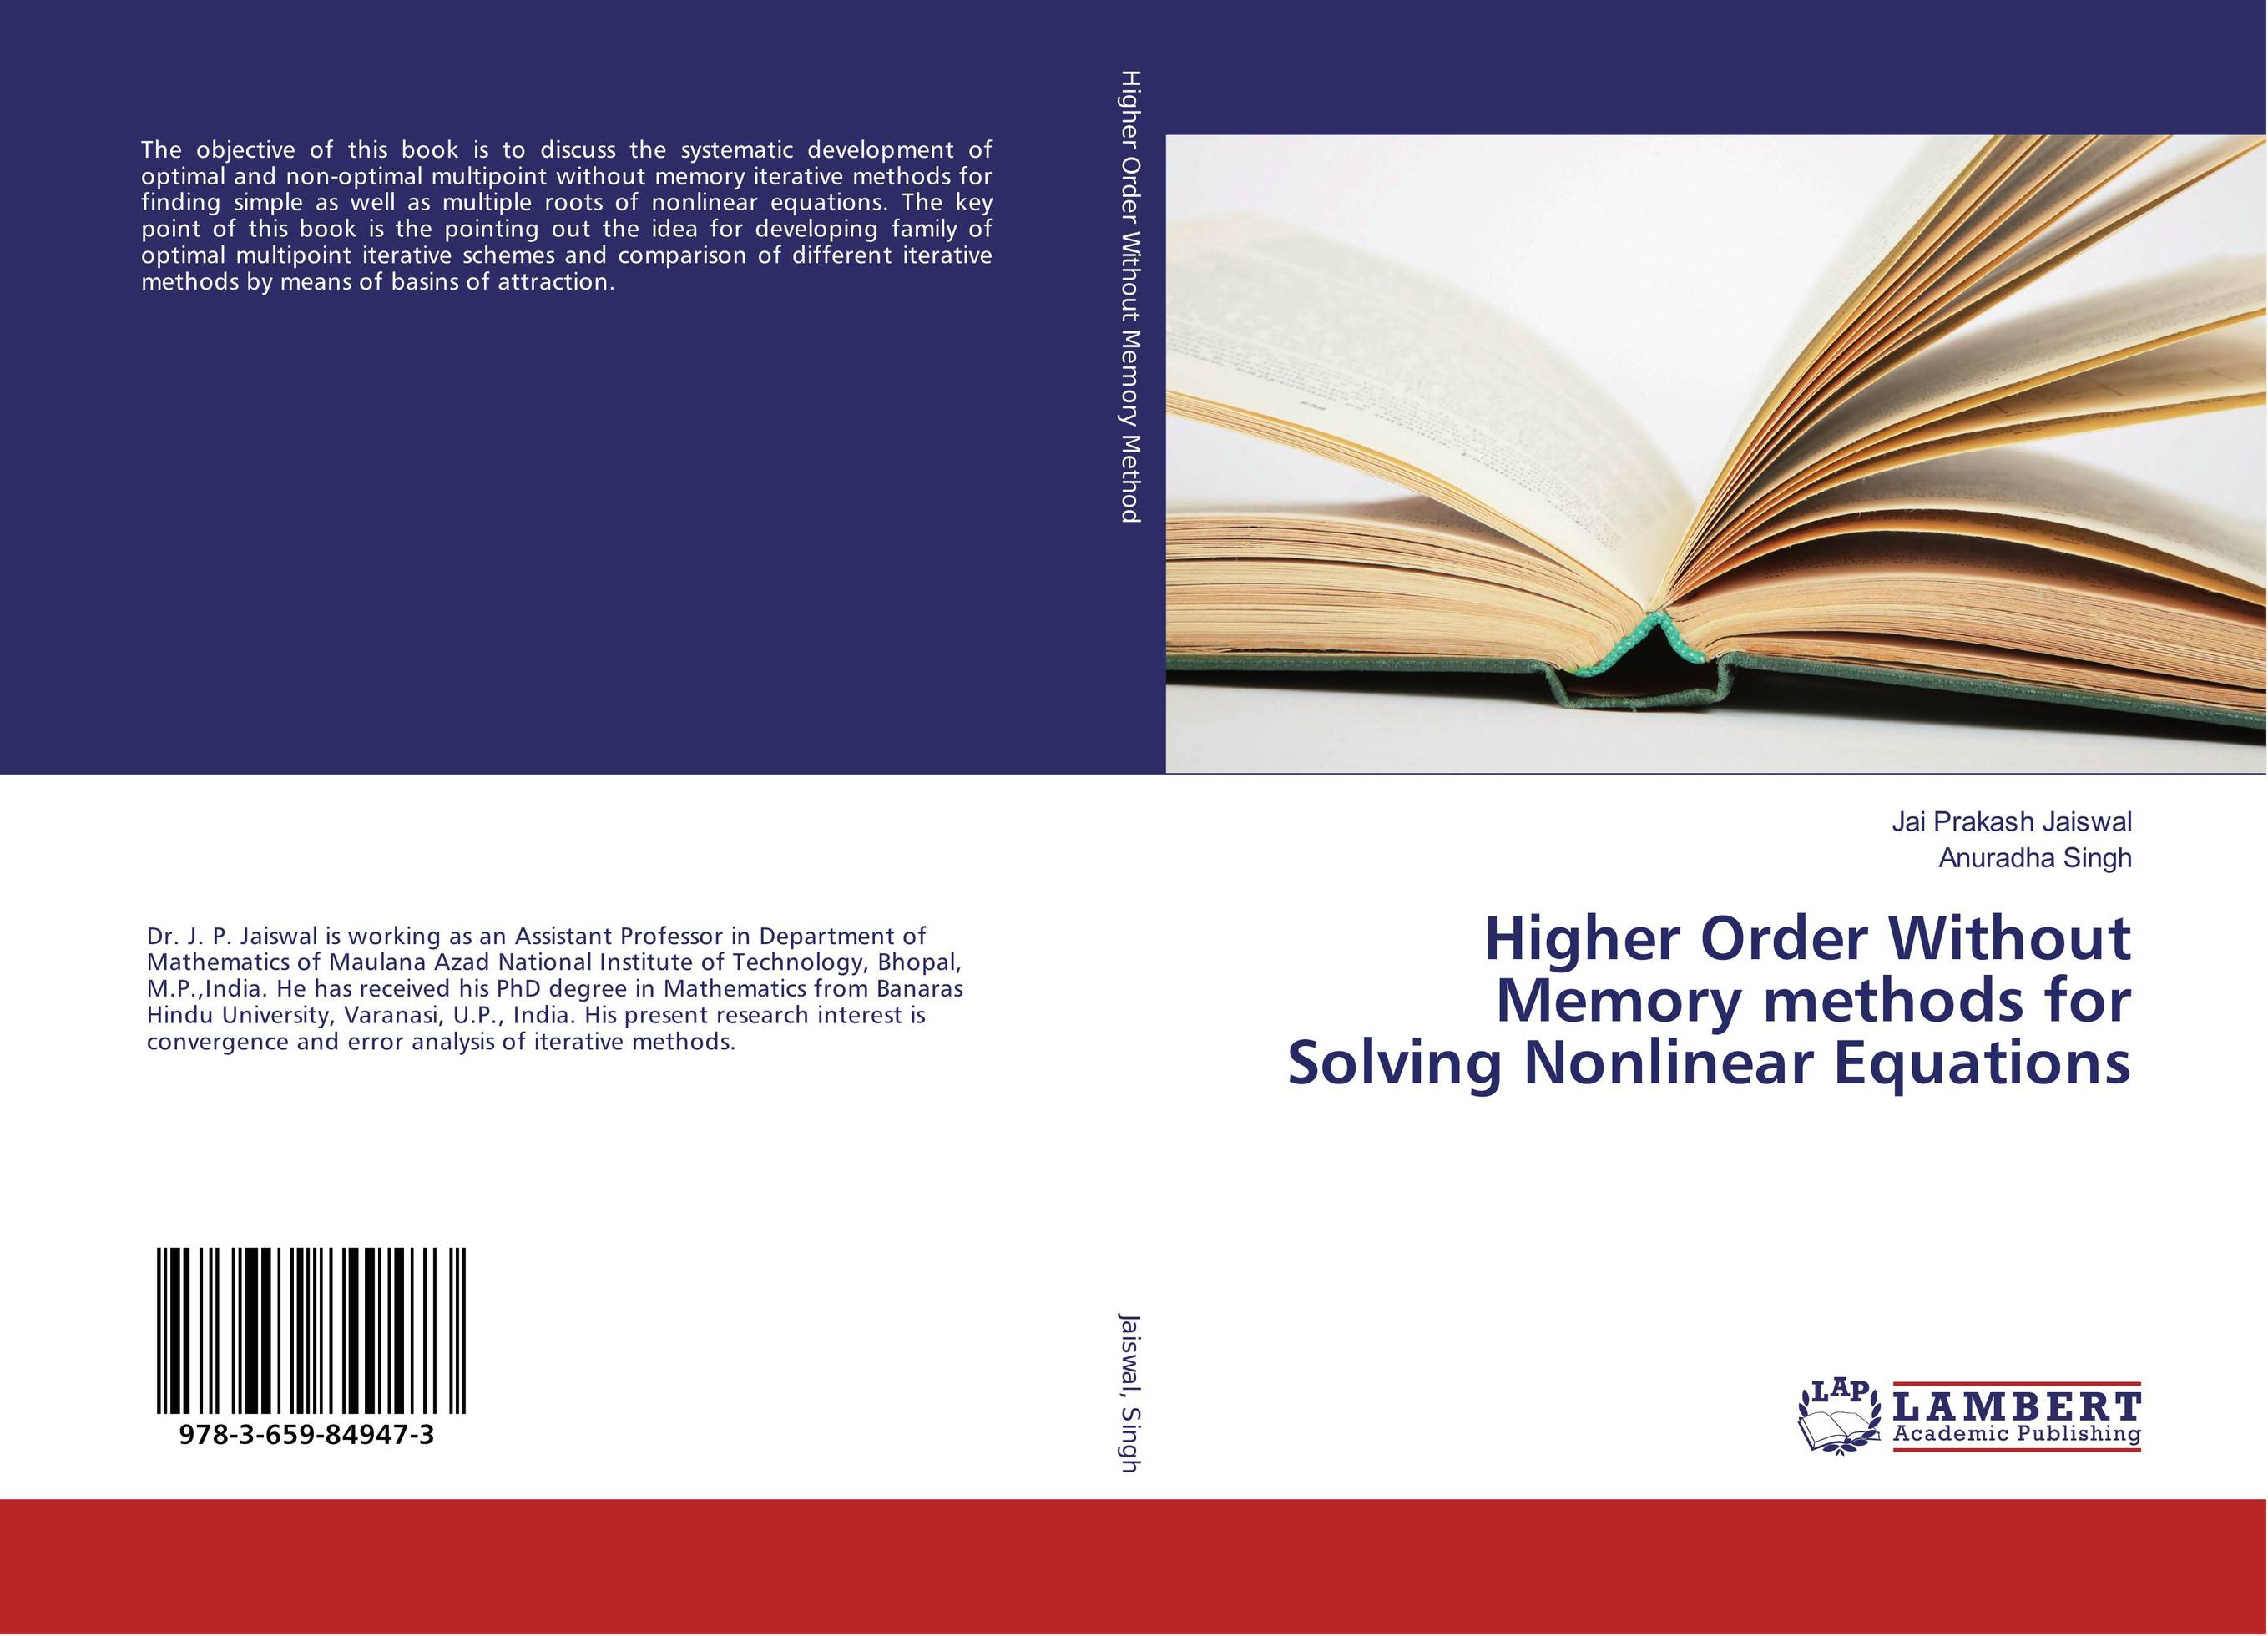 Higher Order Without Memory methods for Solving Nonlinear Equations the book of memory